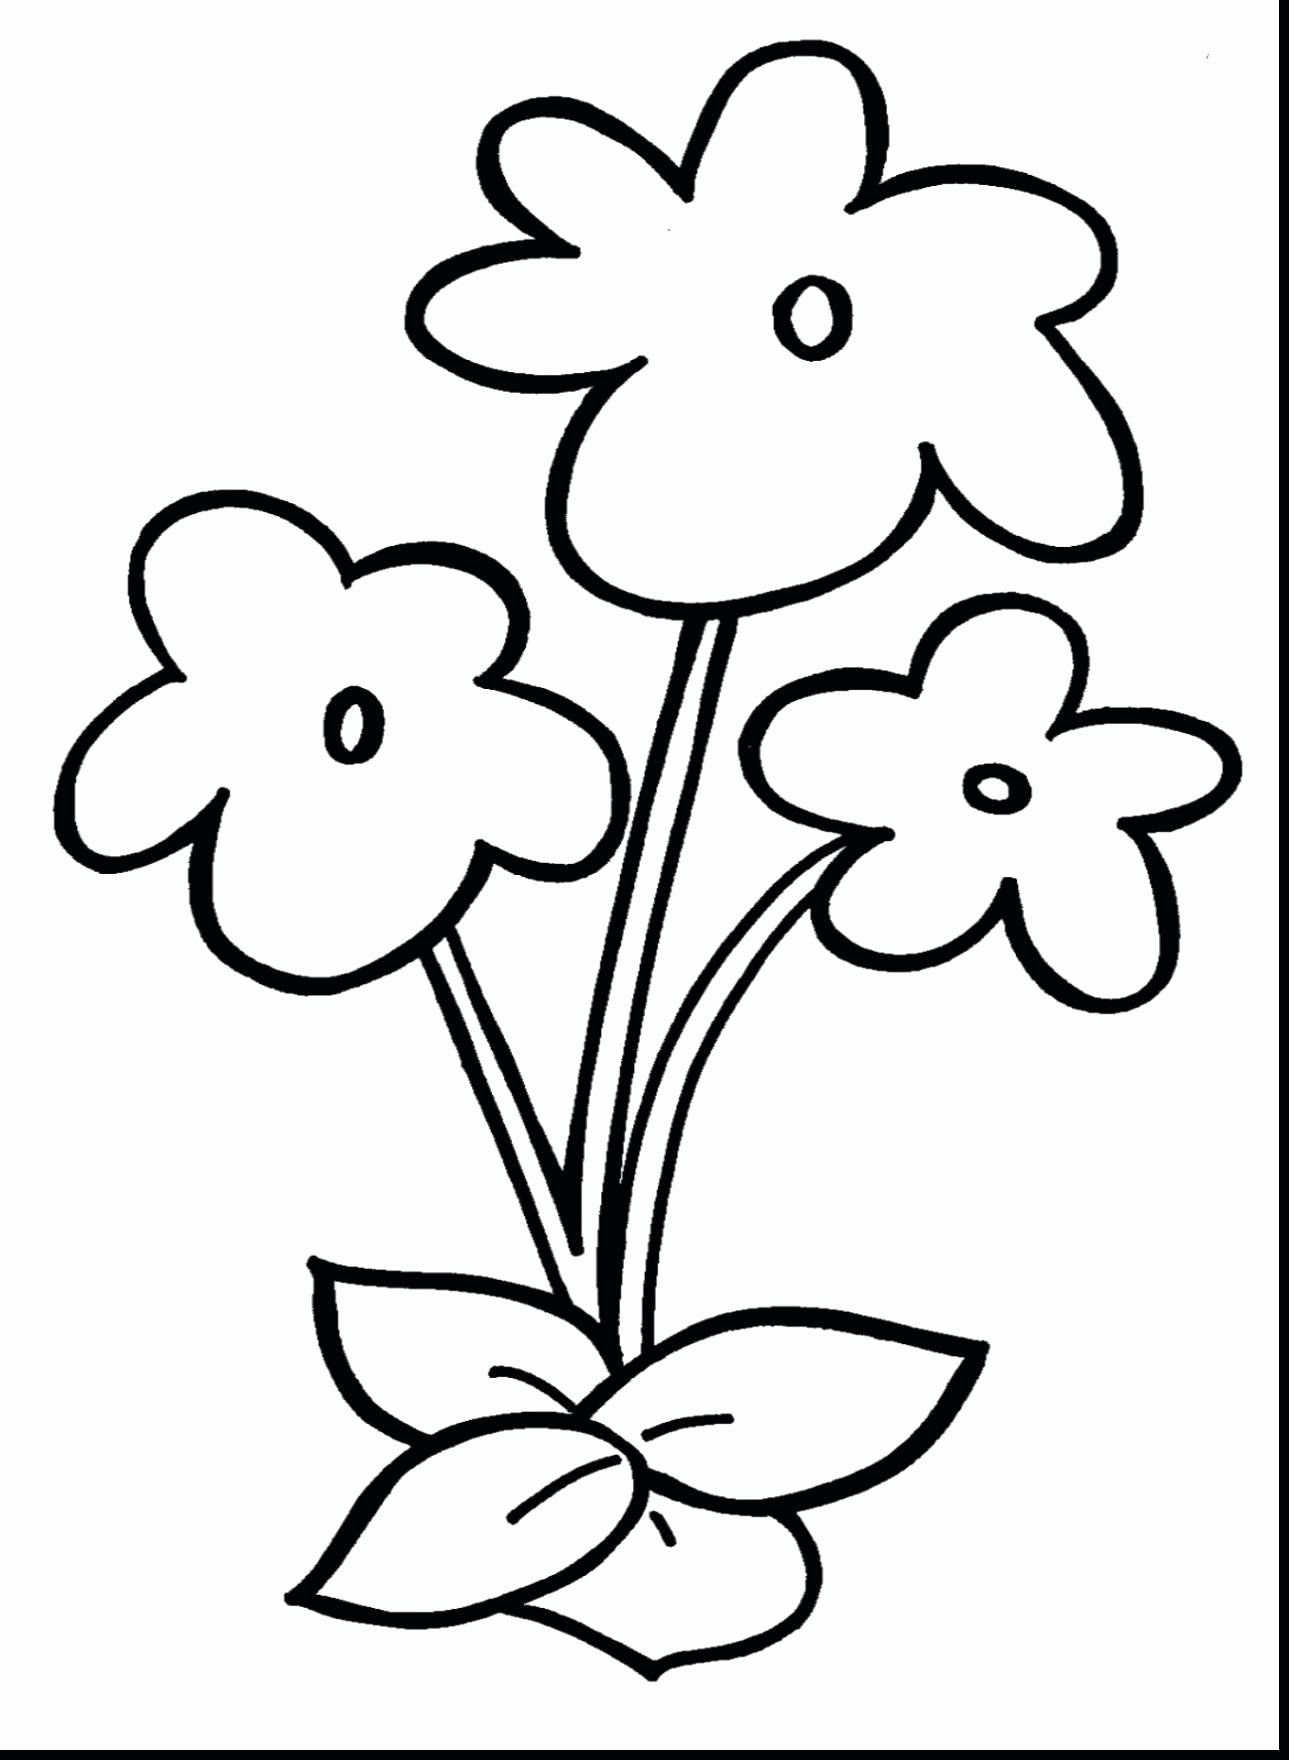 Space astronaut Coloring Pages Fresh Printable Daffodil Coloring